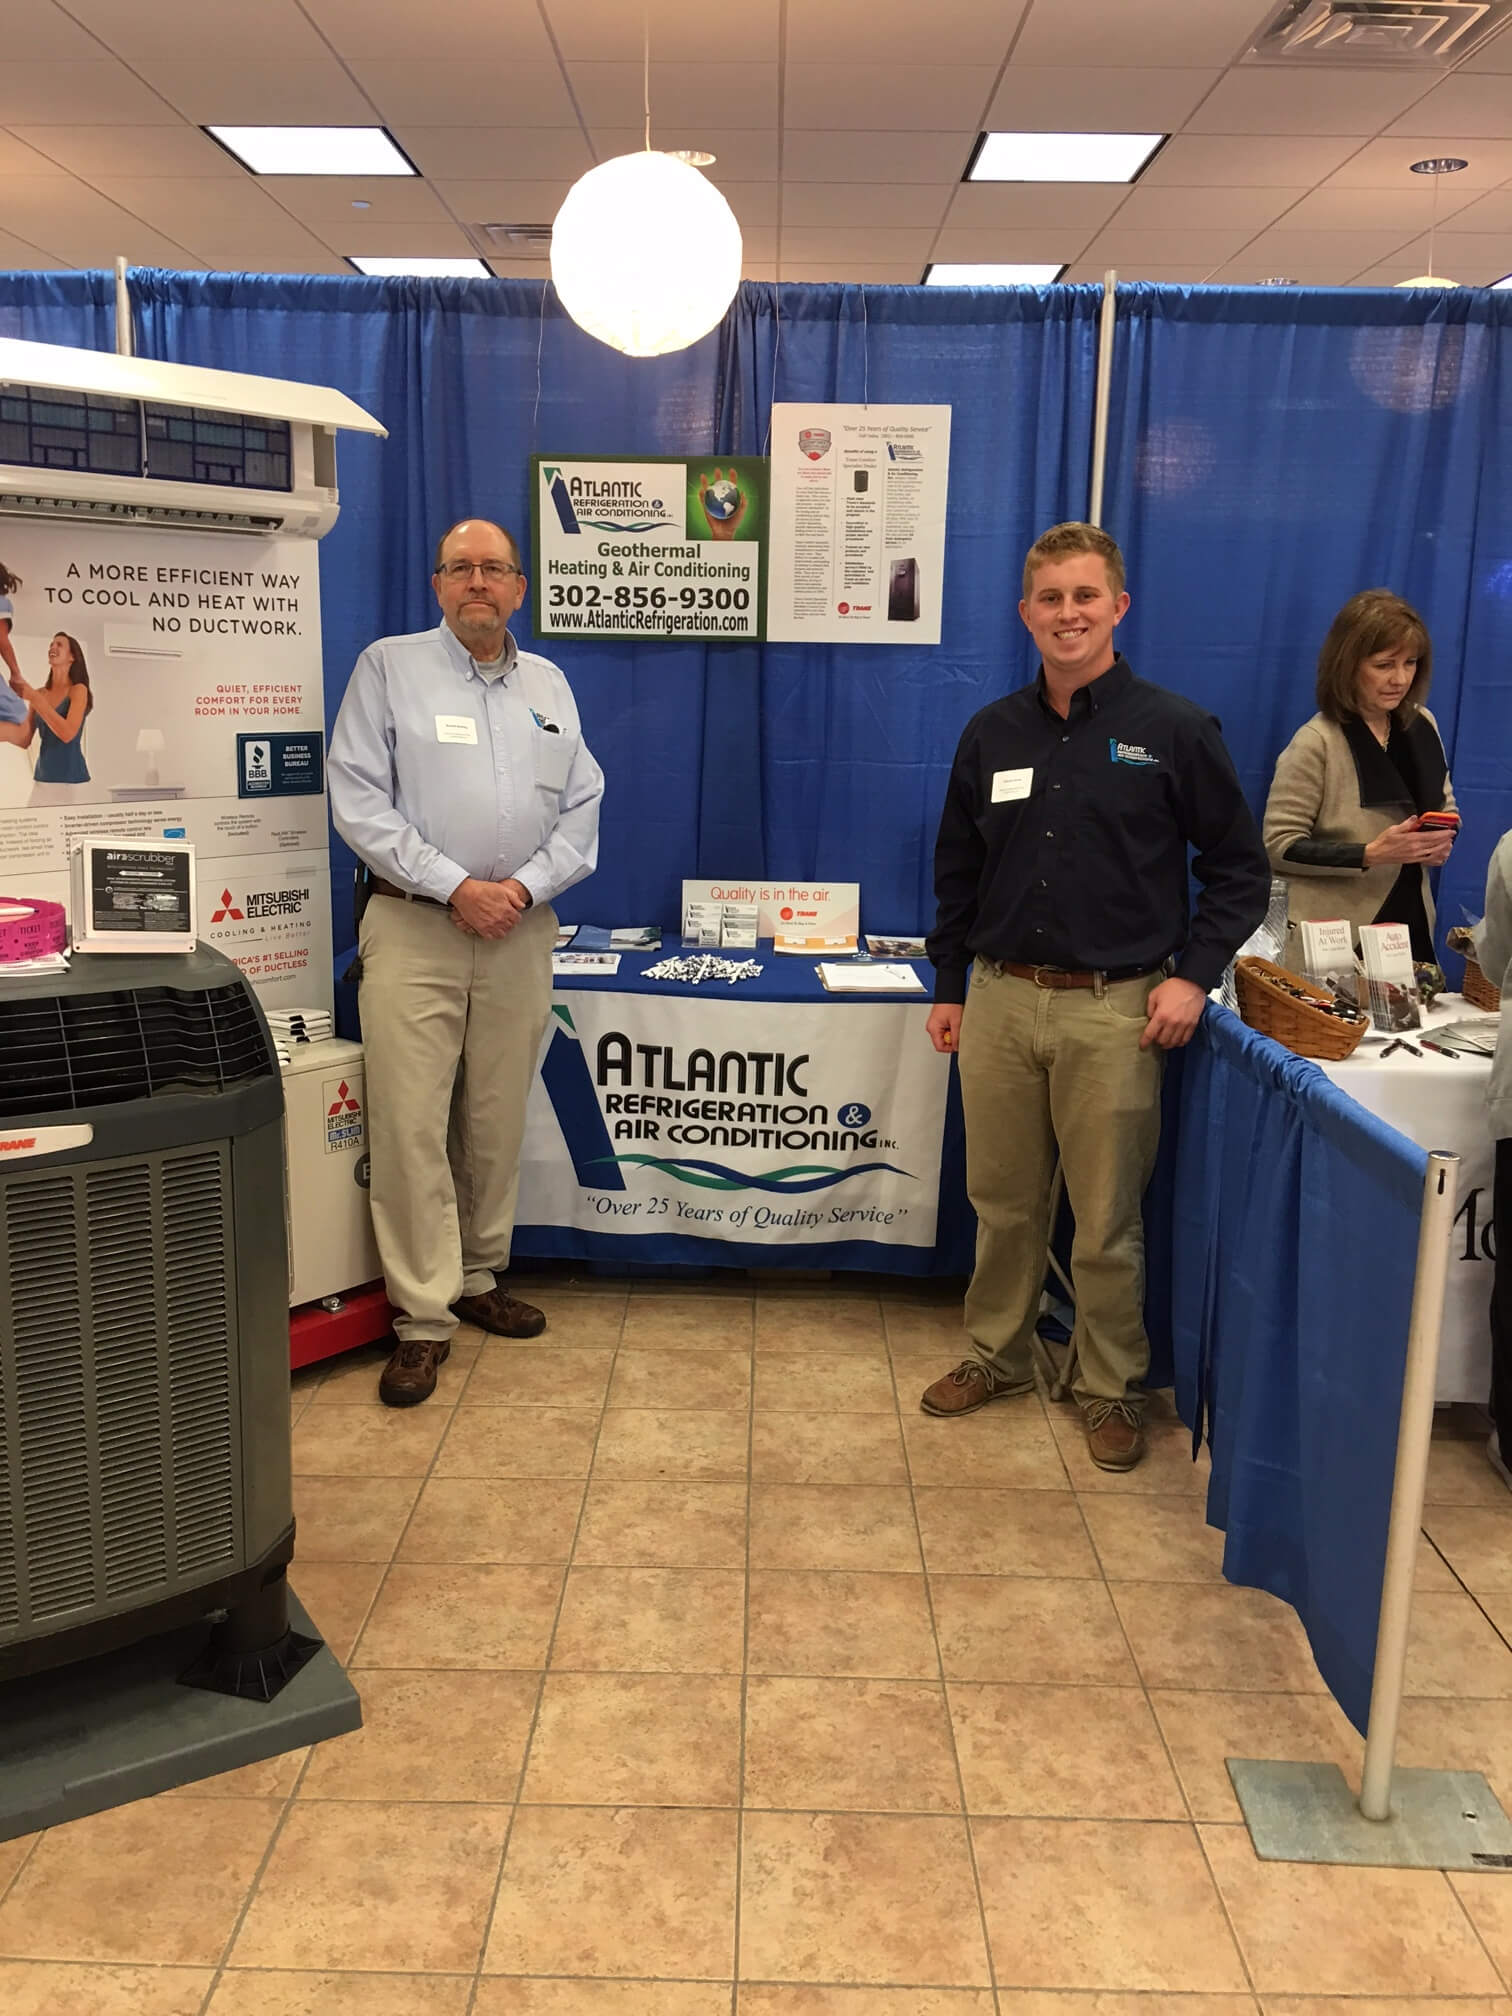 Atlantic Refrigeration at the 7th Annual Women's Expo